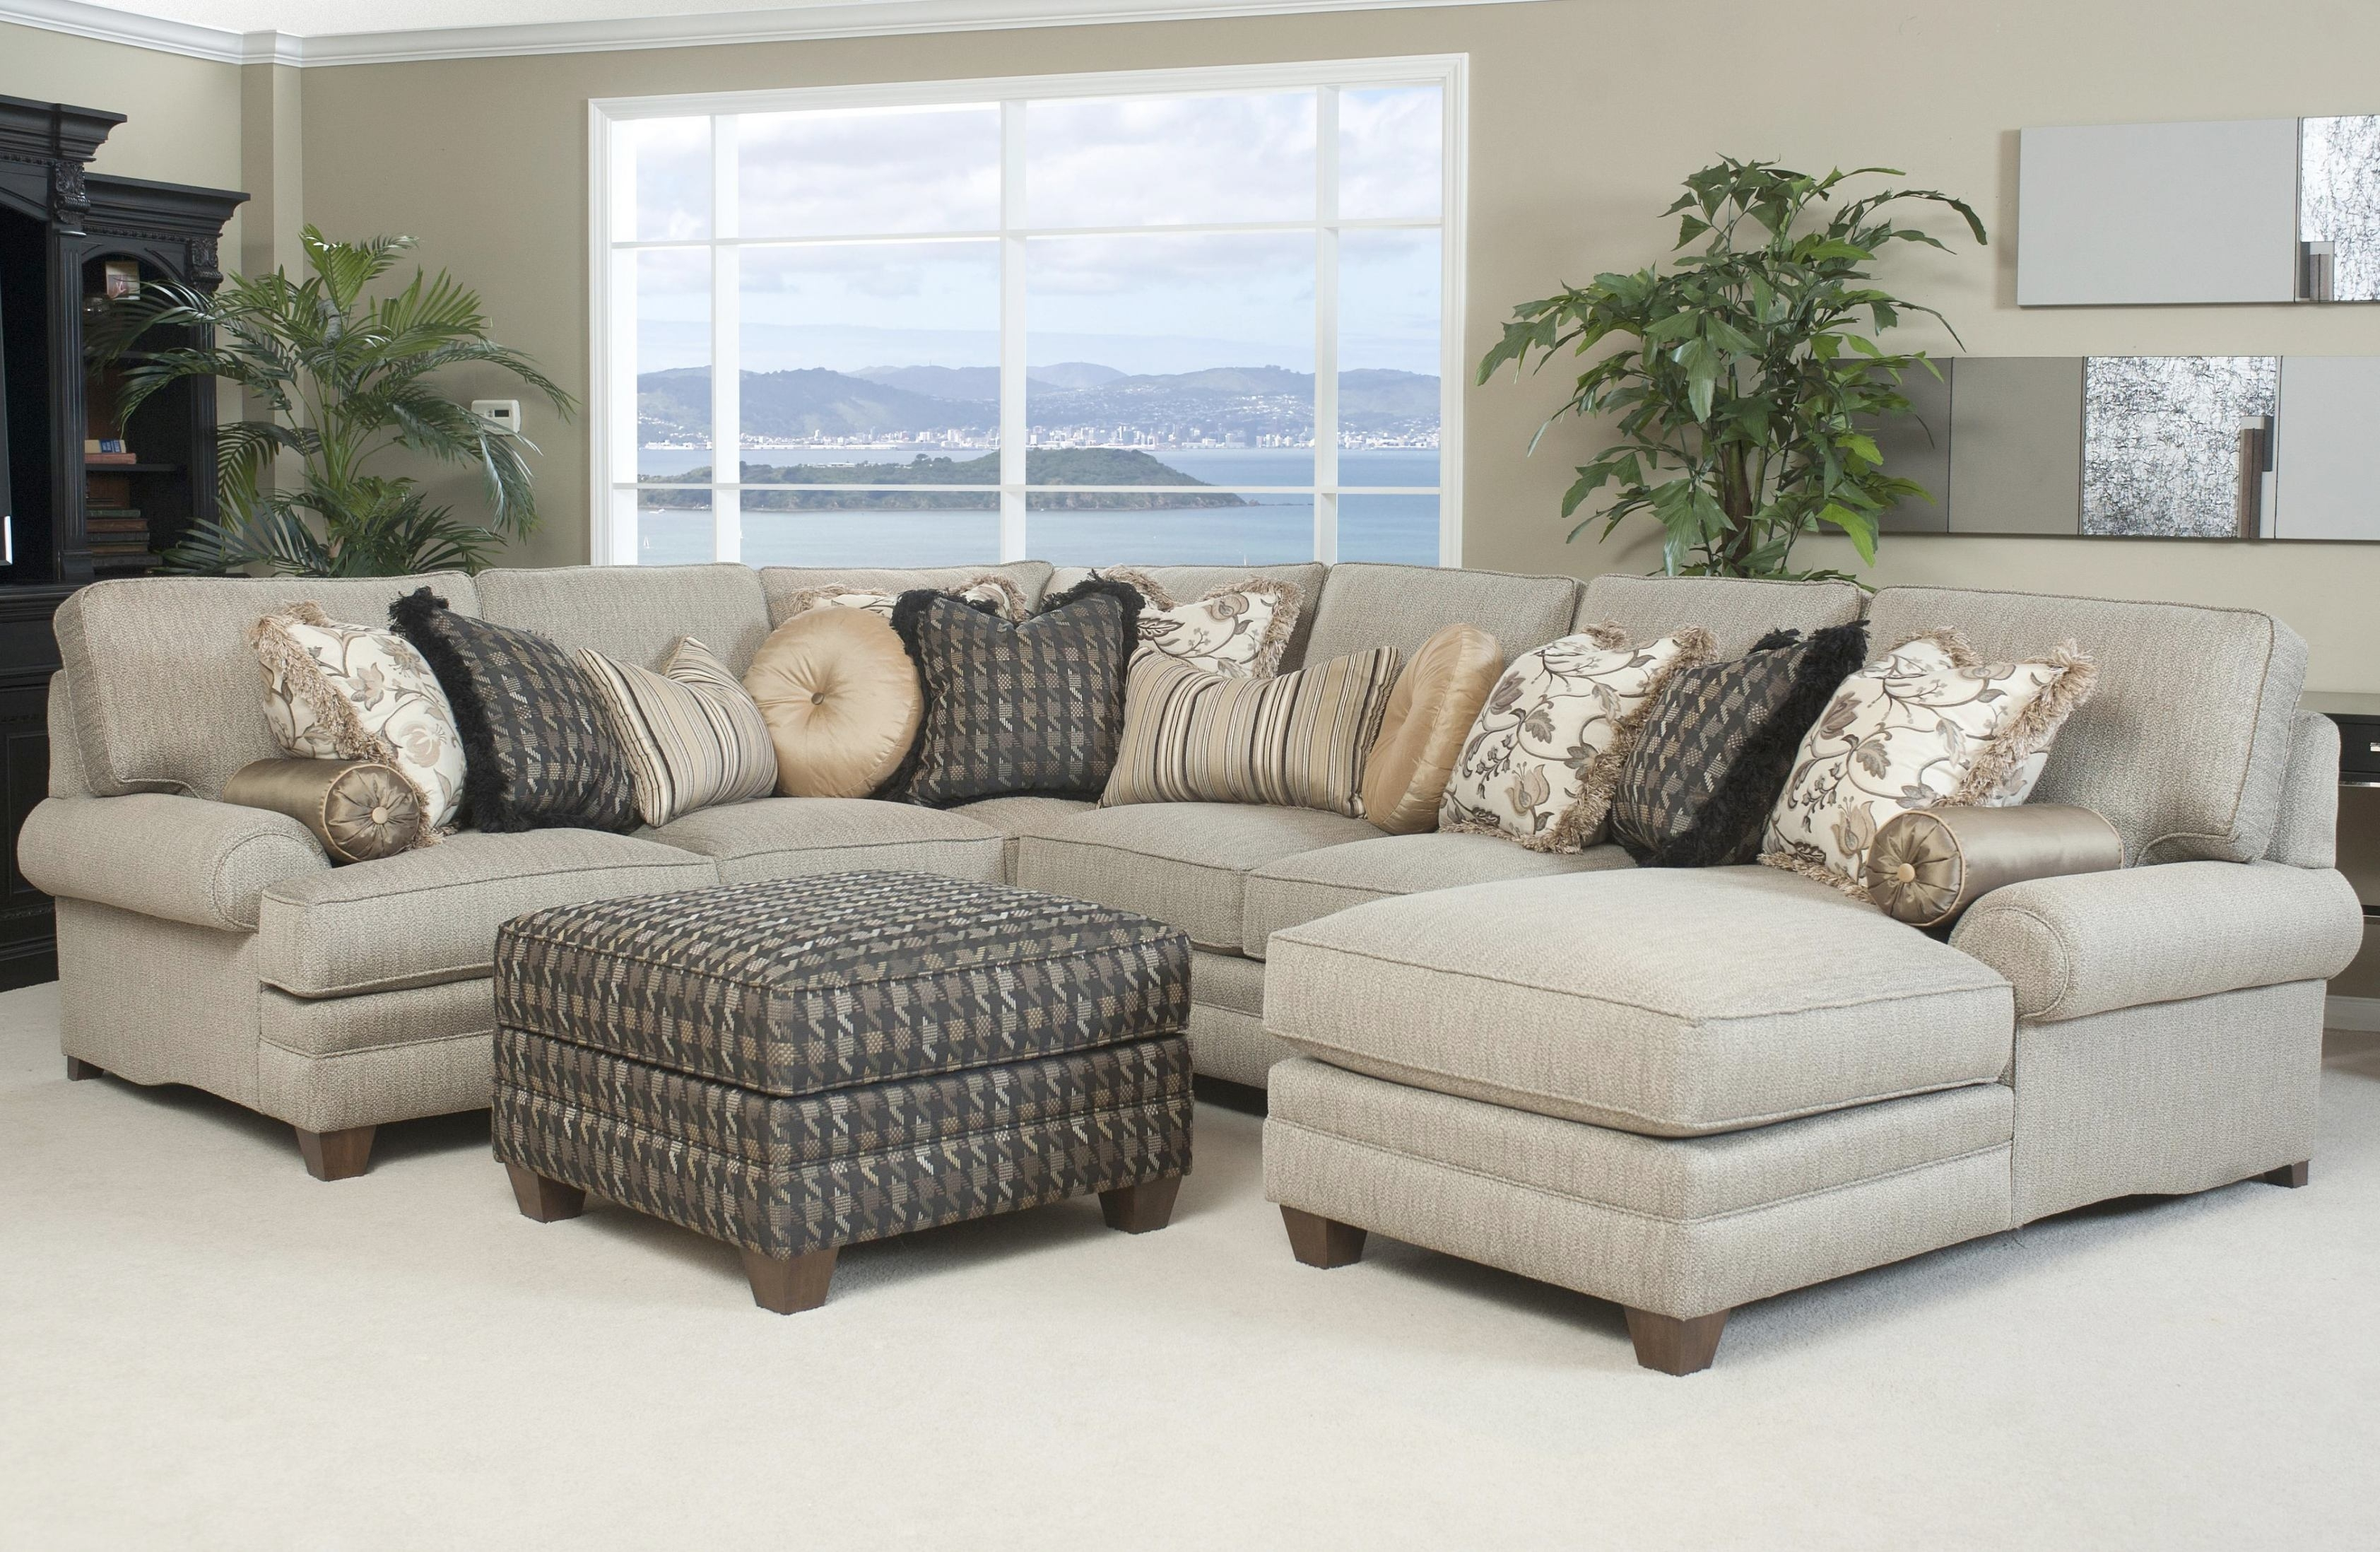 Delightful Most Comfortable Sectional Reviews #1 Inspiring Most With Sectional Sofas At Buffalo Ny (View 7 of 10)